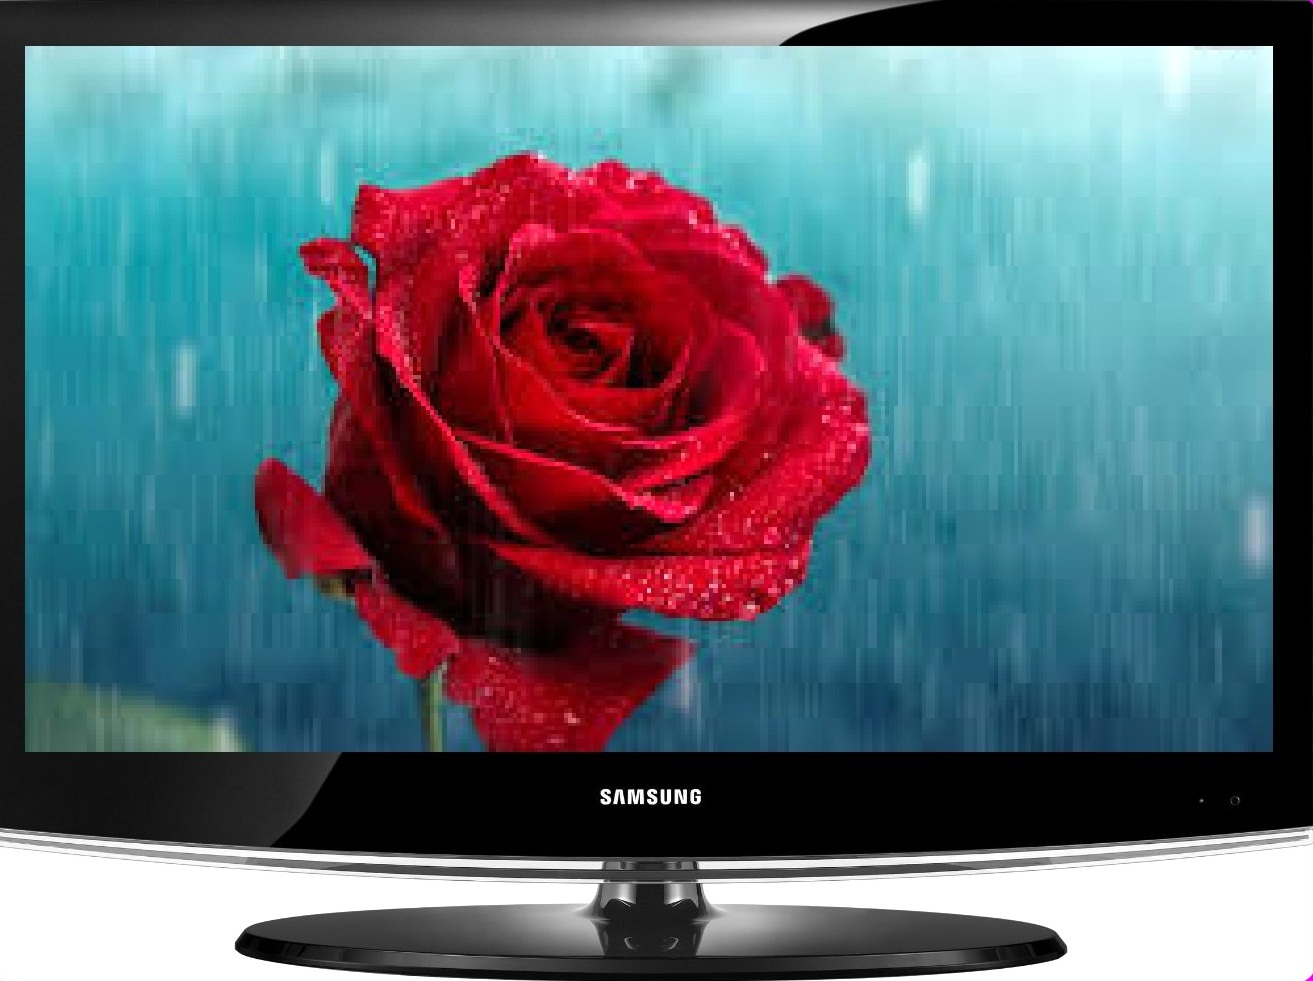 Samsung La26a450c1 Reviews Price Specifications Compare Remot Remote Tv Lg Lcd Led Plasma Slim Fit Flat Image